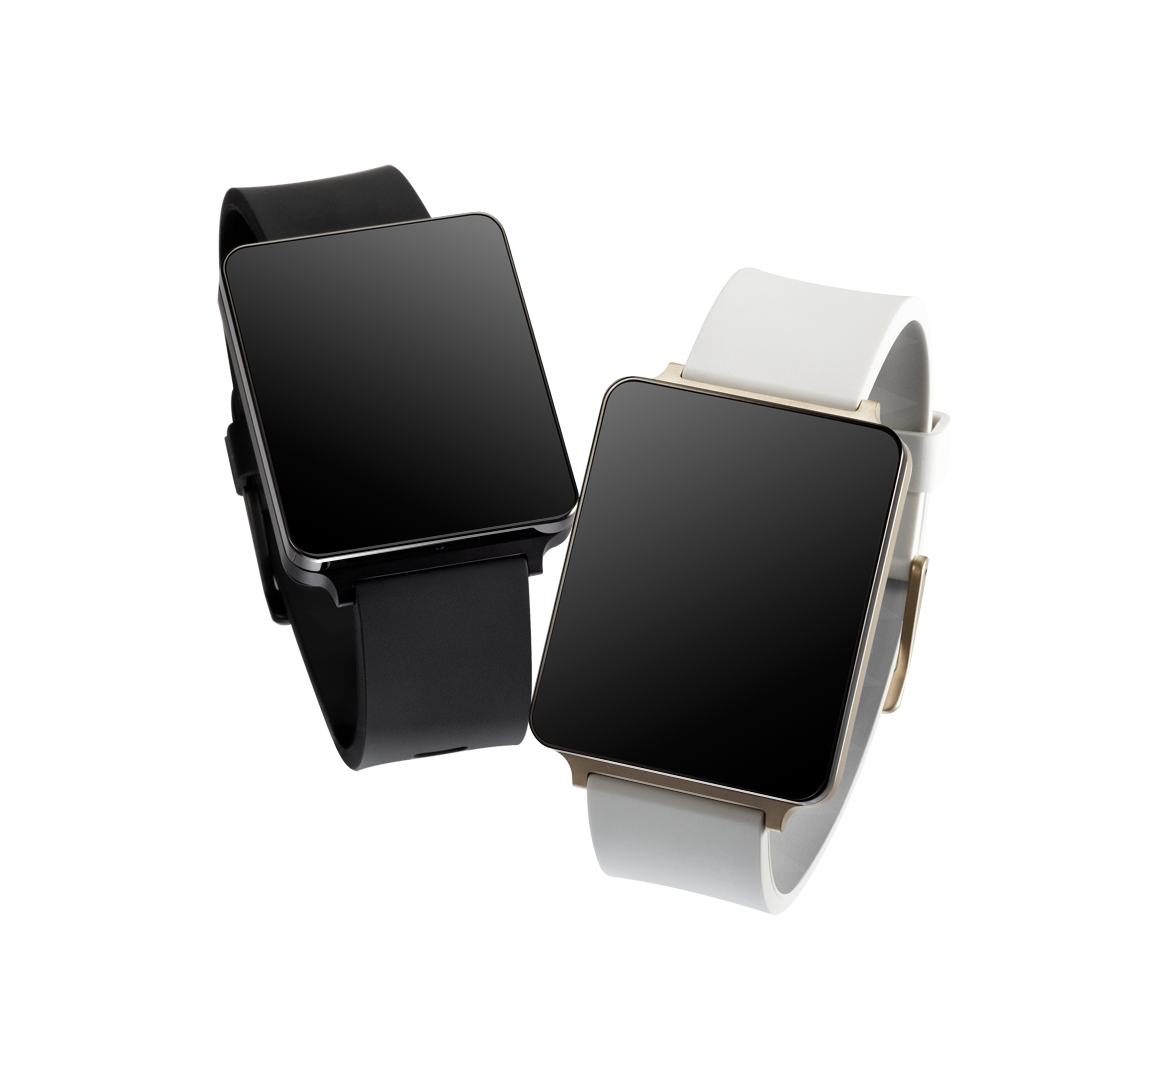 LG G Watch both